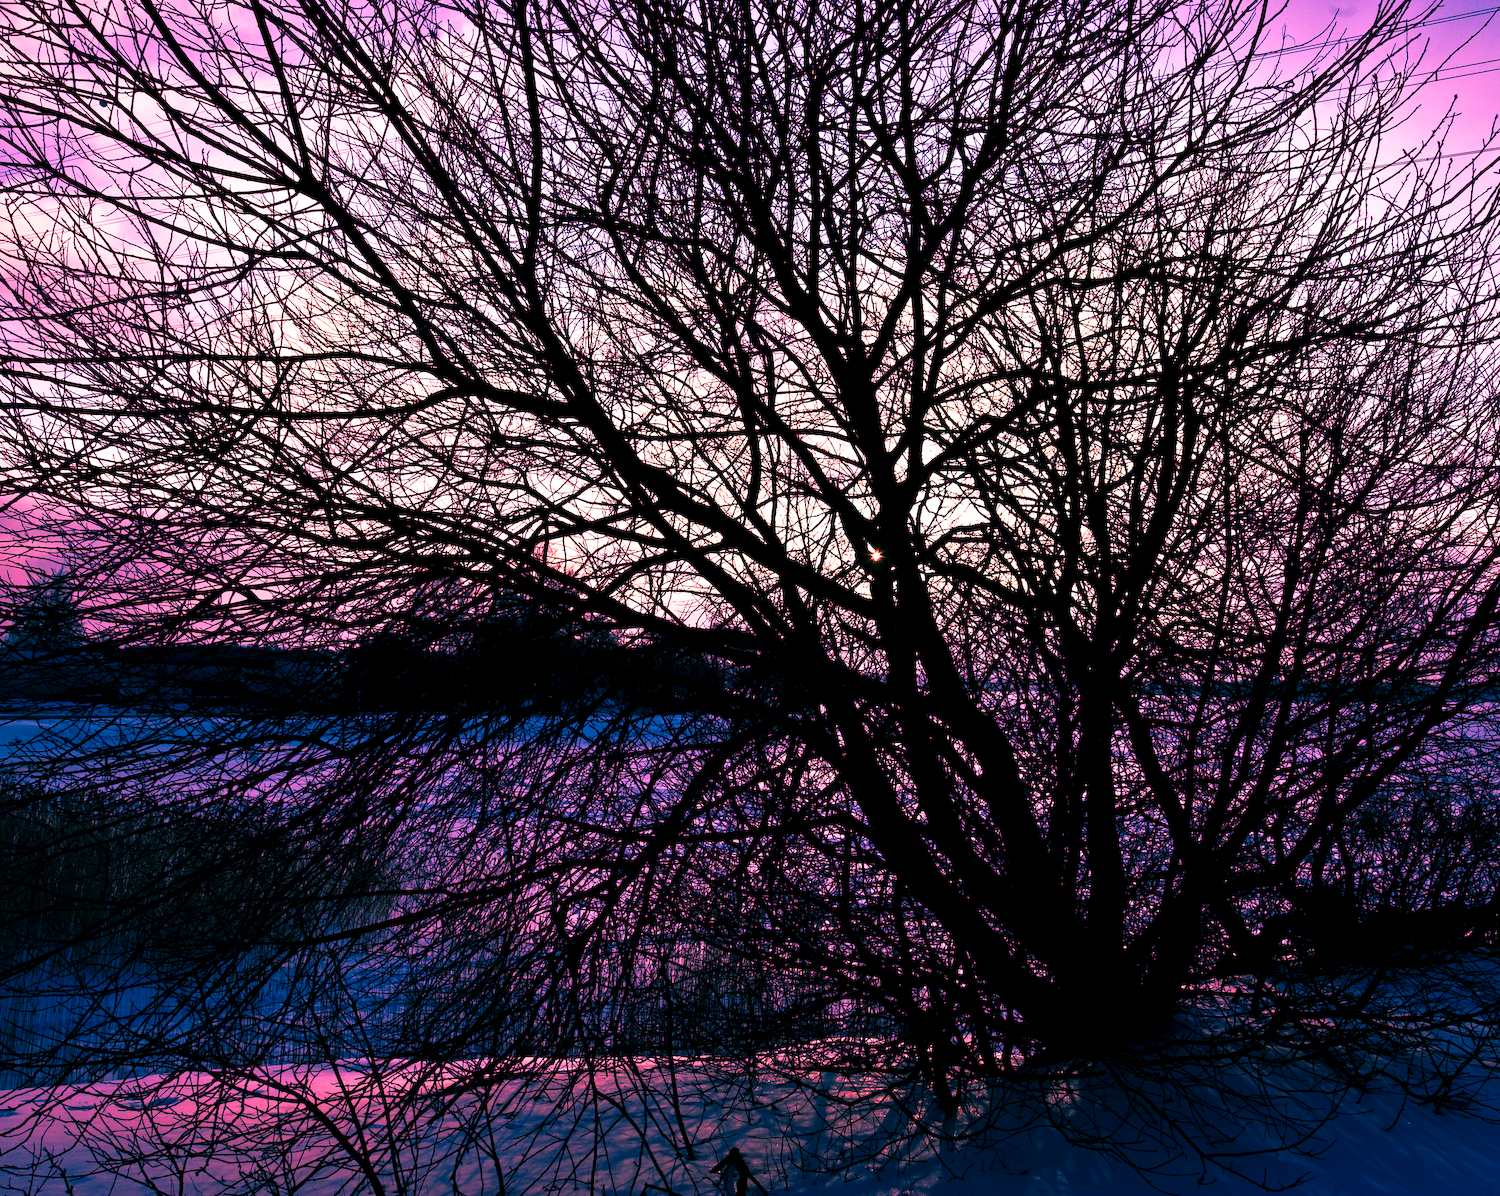 tree in march sunset author soini hannu